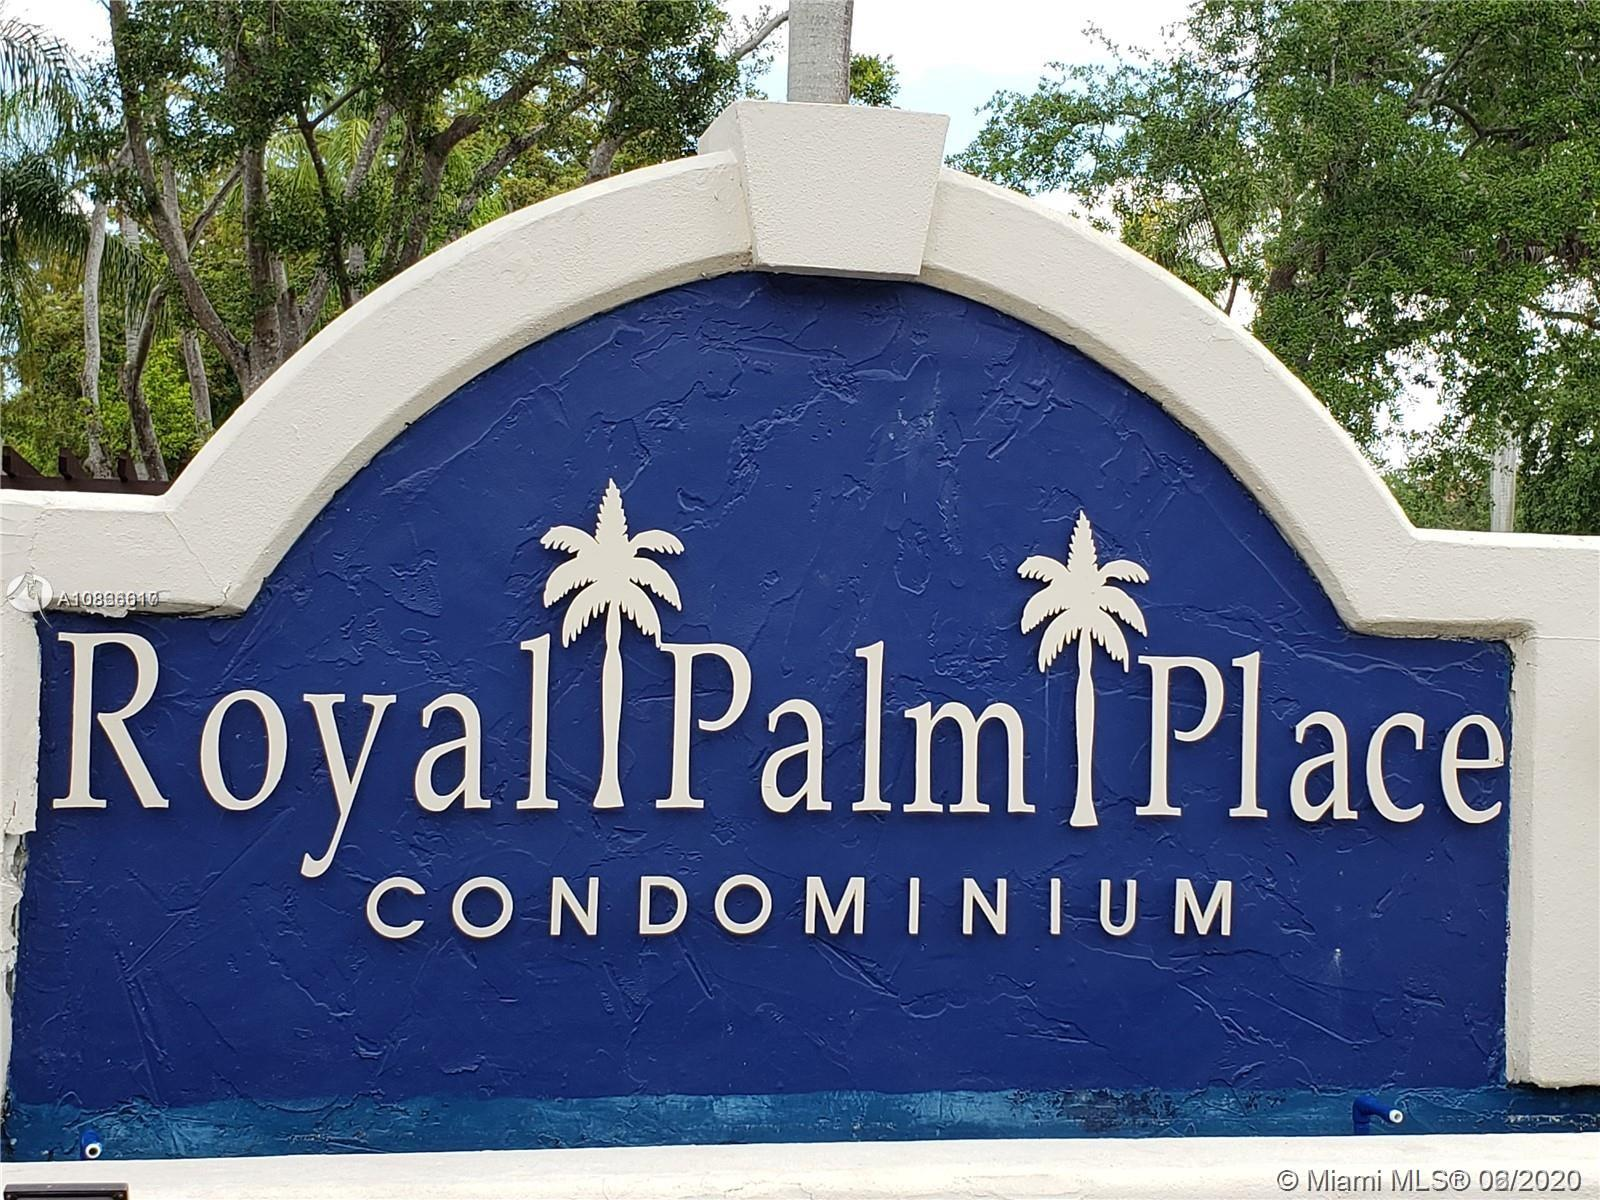 UPDATED 2 BED / 2 BATH CONDO. SPLIT BEDROOM FLOOR  PLAN BOTH BATHROOM, SPACIOUS FORMAL DINING AREA AS WELL AS LIVING AREA WITH HIGH CEILINGS. OPEN KITCHEN, GRANITE COUNTER TOP, PERFECT FOR ENTERTAINING, SPACIOUS BALCONY WITH STORAGE ROOM. ROYAL PALM PLACE OFFERS A BASKETBALL COURT, KIDS PLAYGROUND, CLUBHOUSE, GYM. TENNIS COURTS, POOL & JACUZZI AND 24/7 PUBLIC SAFETY SERVICES. ENJOY THE 7-MILE PATH AT THE HAMMOCKS LAKE, HAMMOCKS ASSOCIATION ALSO INCLUDES 3 CLUBHOUSES AND COMMUNITY POOLS, RACQUETBALL, TENNIS COURTS, GYM AND MUCH MORE.